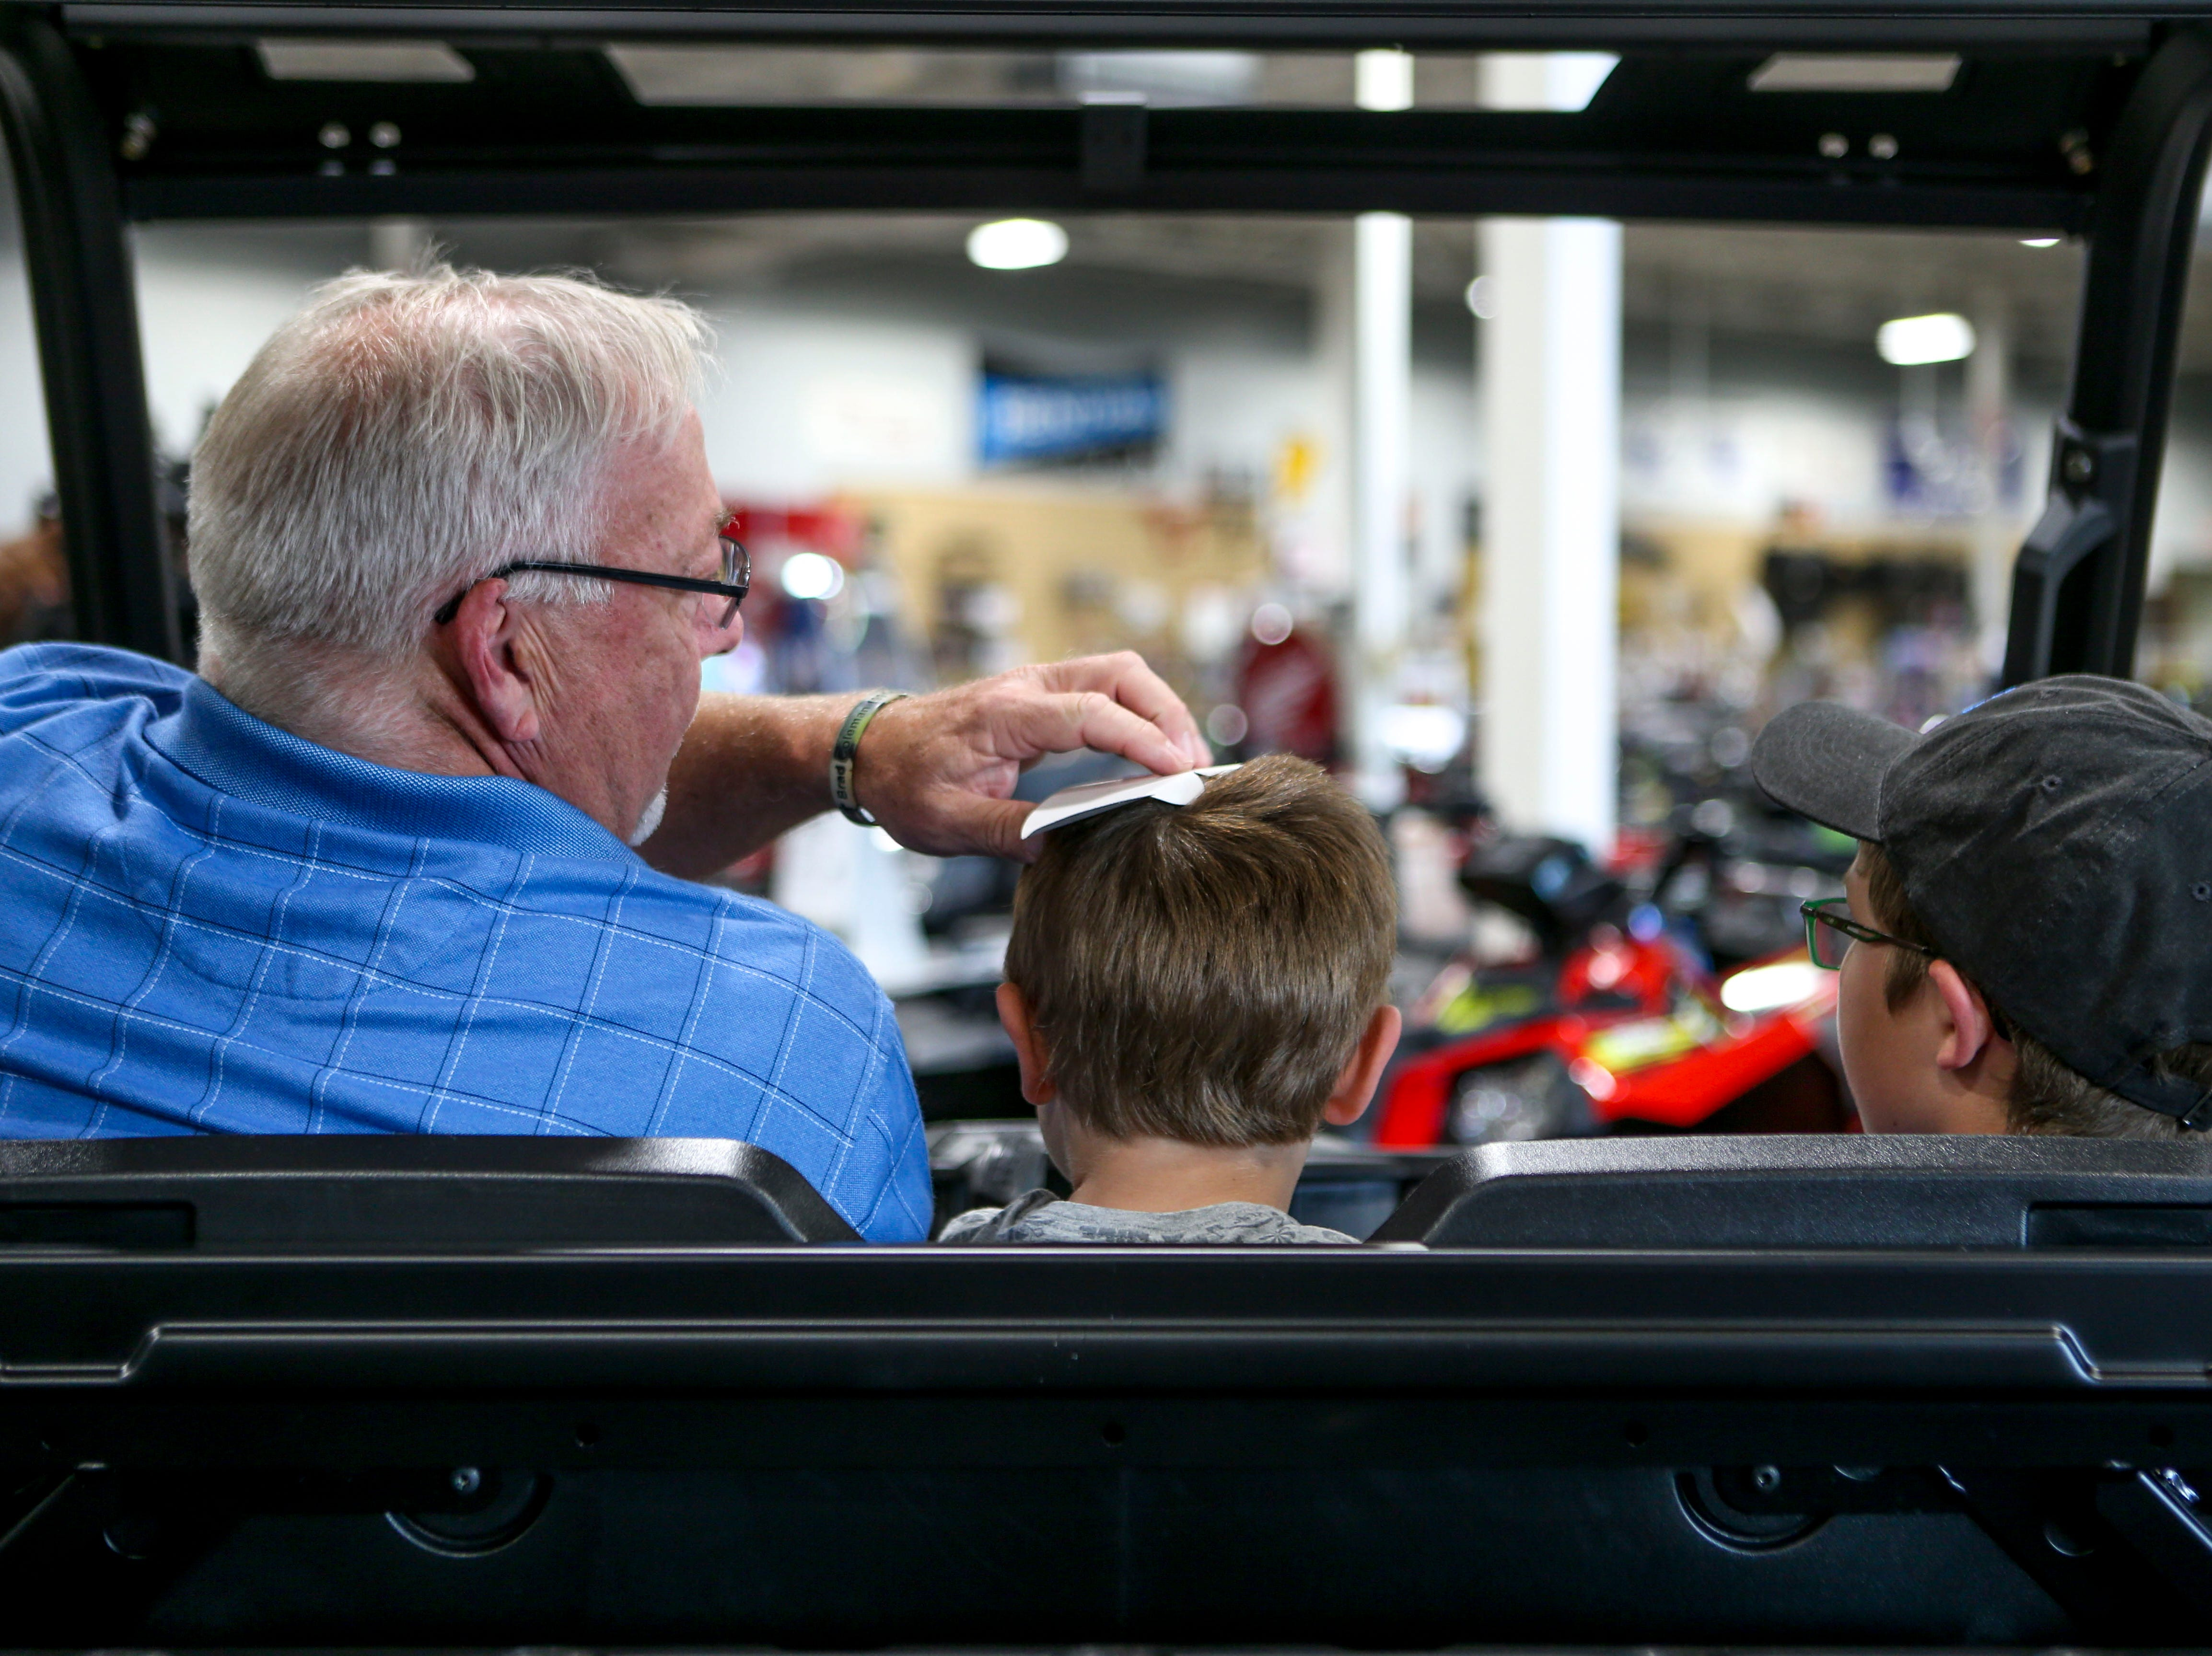 John Coleman, left, pulls off a piece of paper from a baseball hat that John Patrick Coleman, 4, center, placed on his head at Bob's House of Honda in Jackson, Tenn., on Thursday, Sept. 20, 2018.